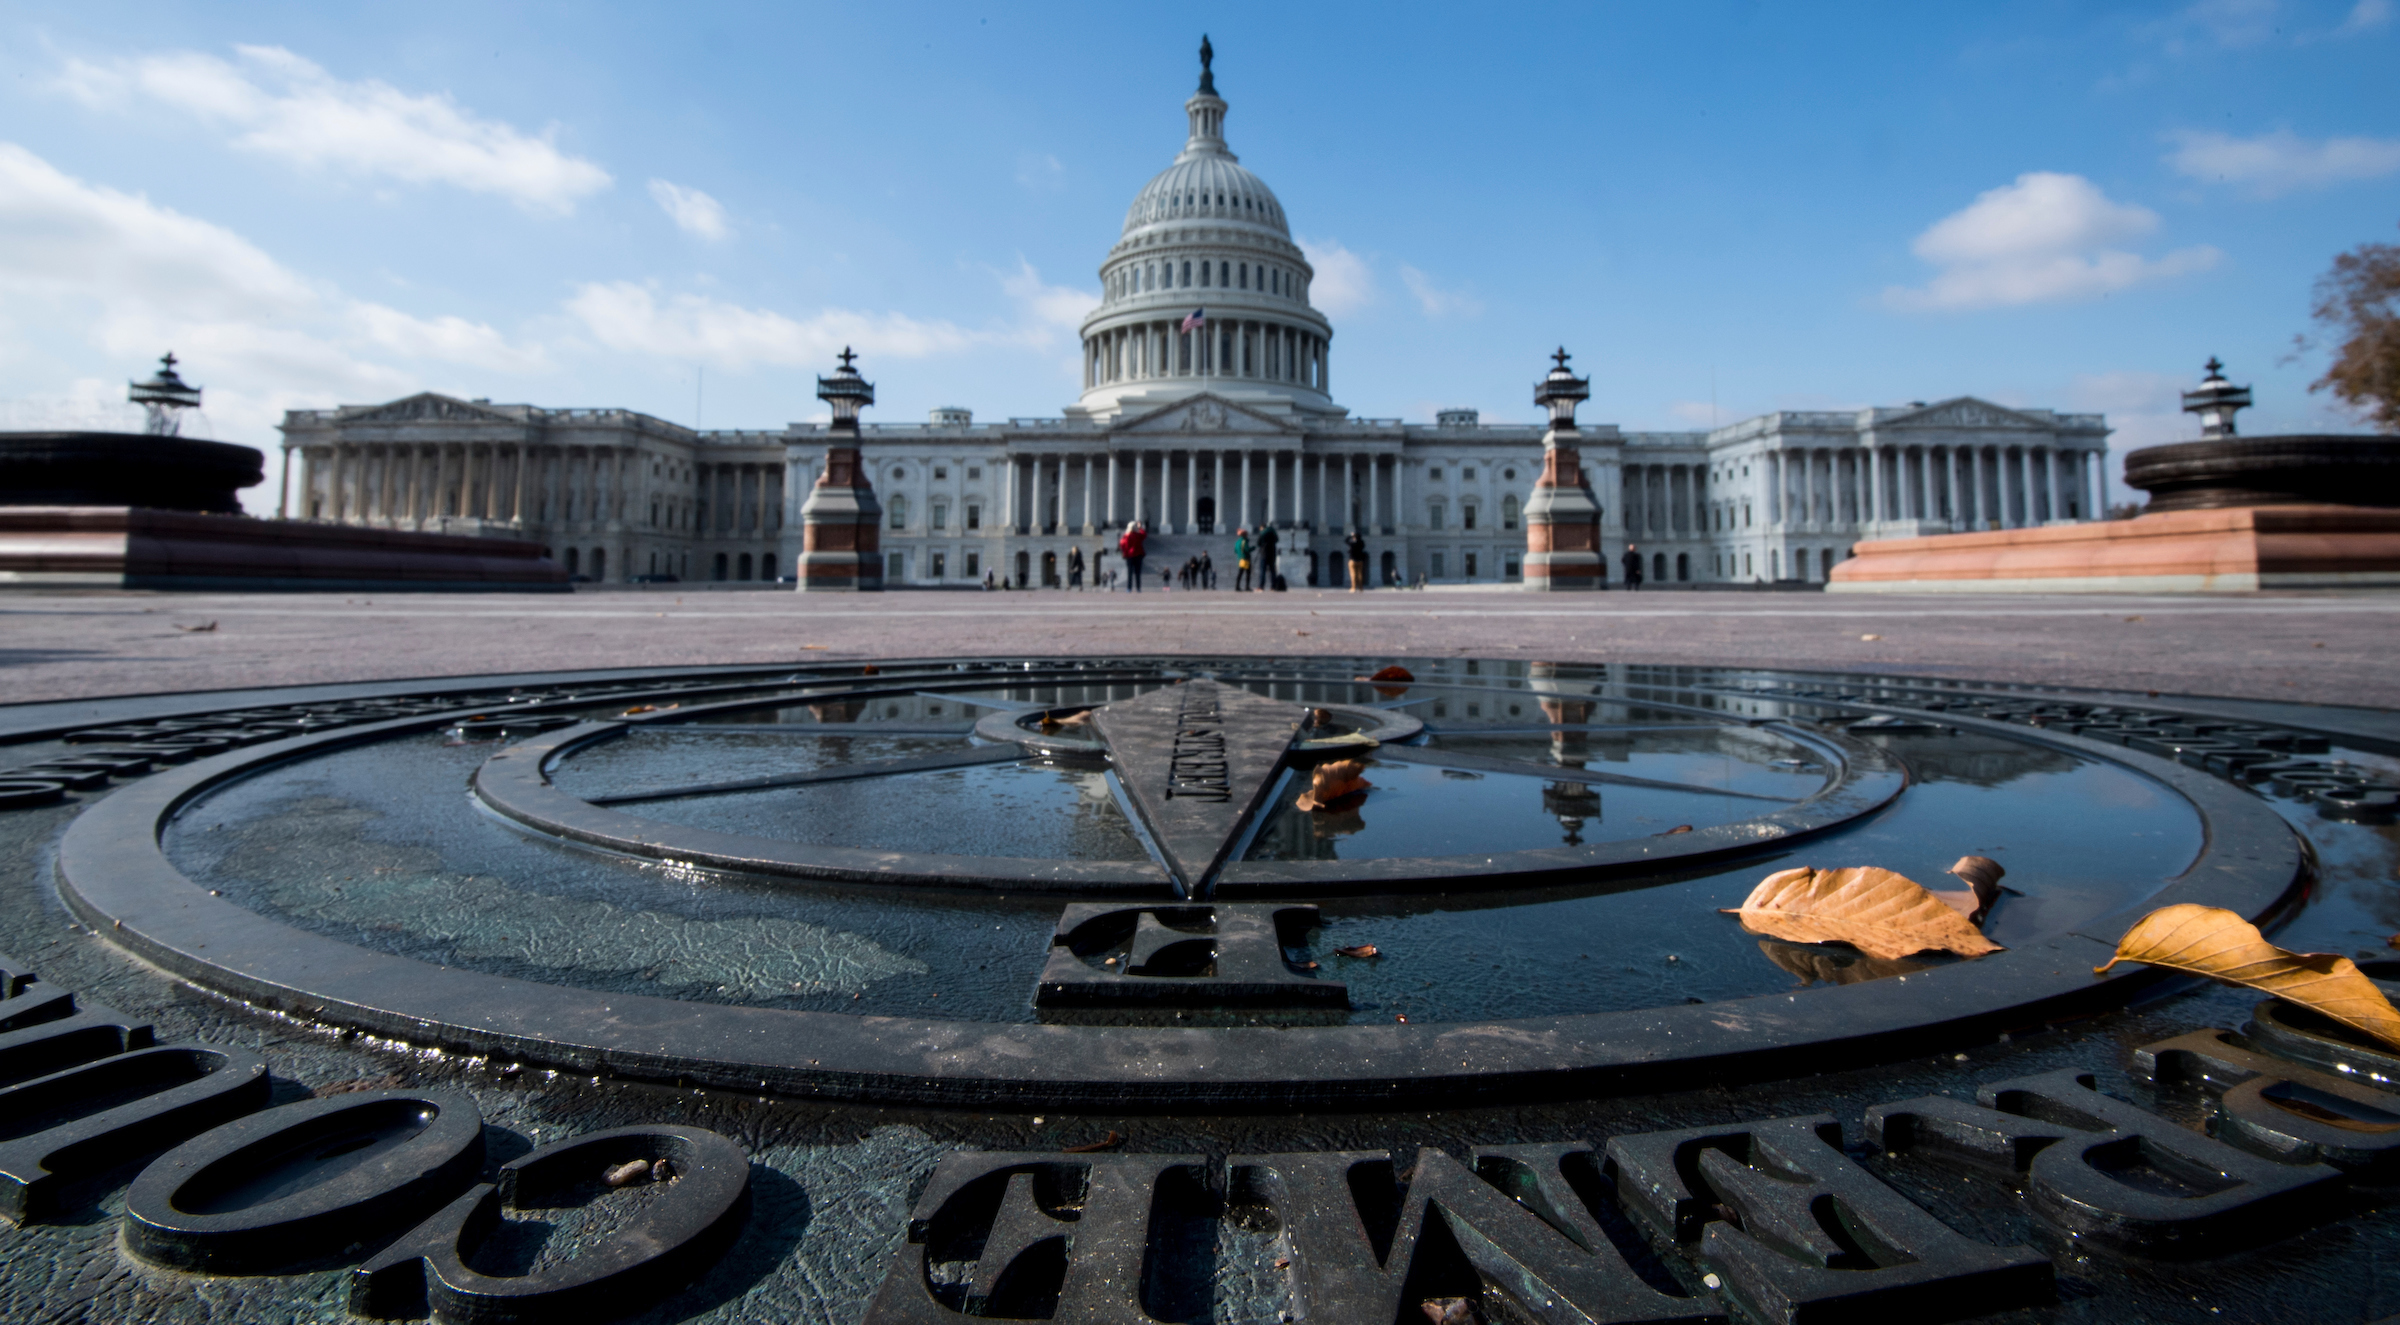 UNITED STATES - NOVEMBER 13: The U.S. Capitol building is shown from the east plaza on Monday, Nov. 13, 2017. (Photo By Bill Clark/CQ Roll Call)